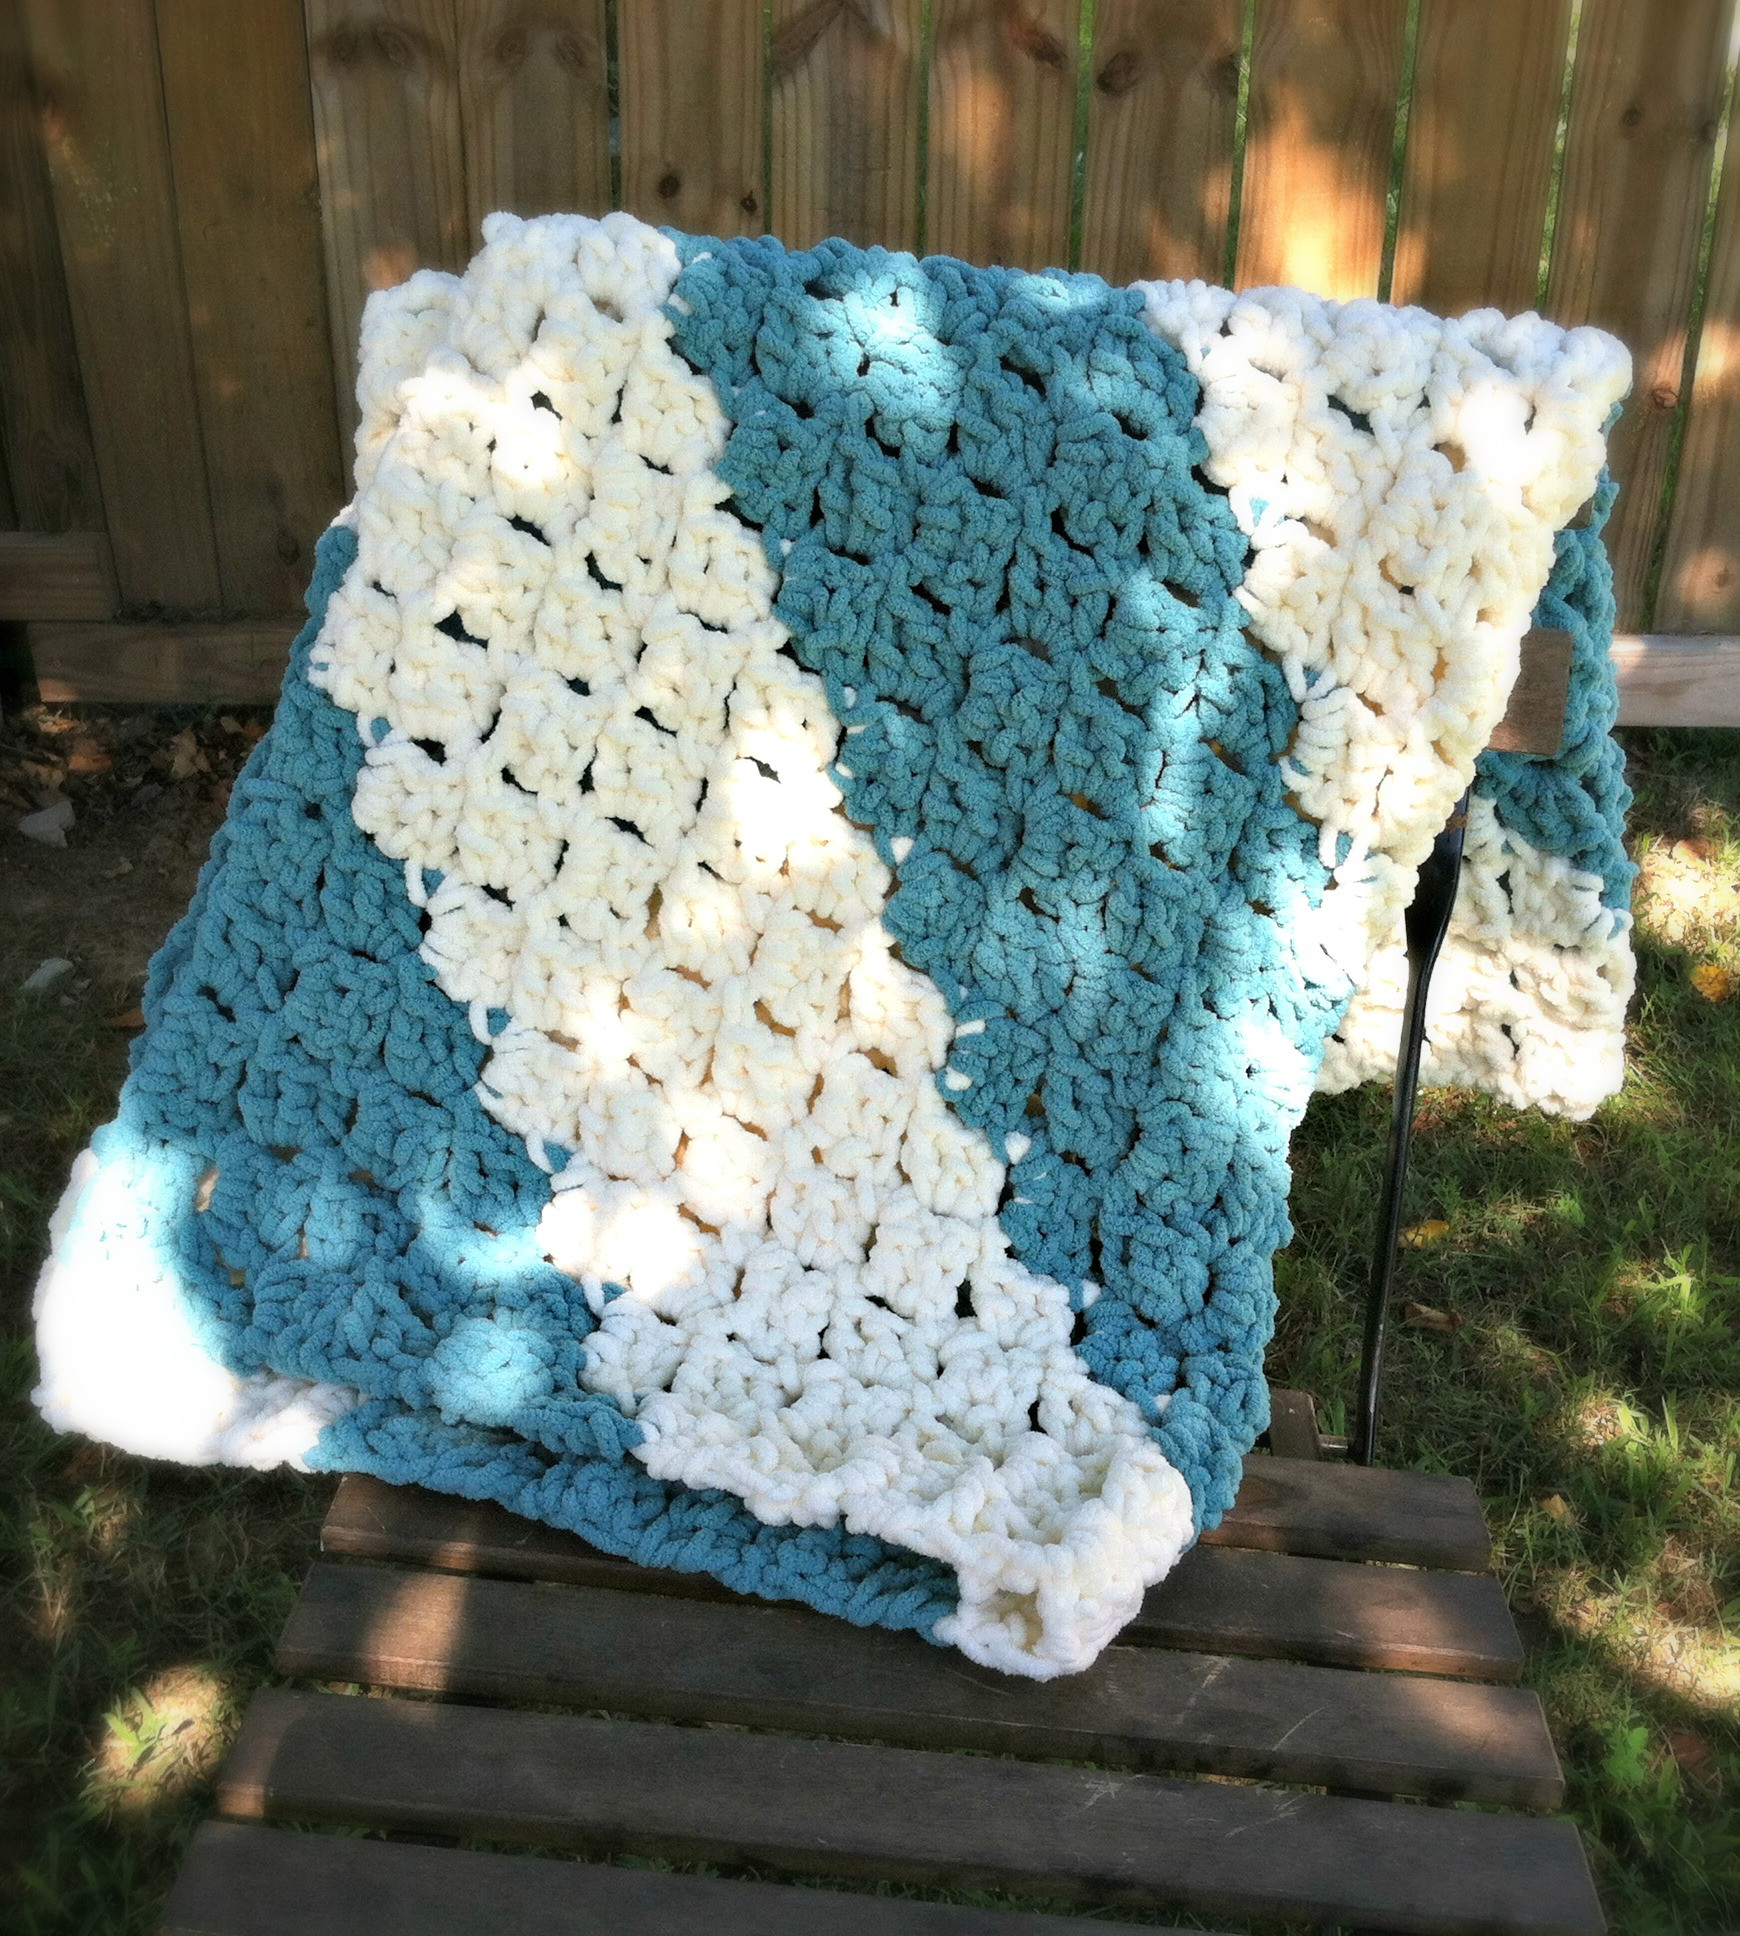 Bernat Baby Blanket Patterns Inspirational Quick and Easy Baby Blanket Free Crochet Pattern Of Beautiful 48 Photos Bernat Baby Blanket Patterns